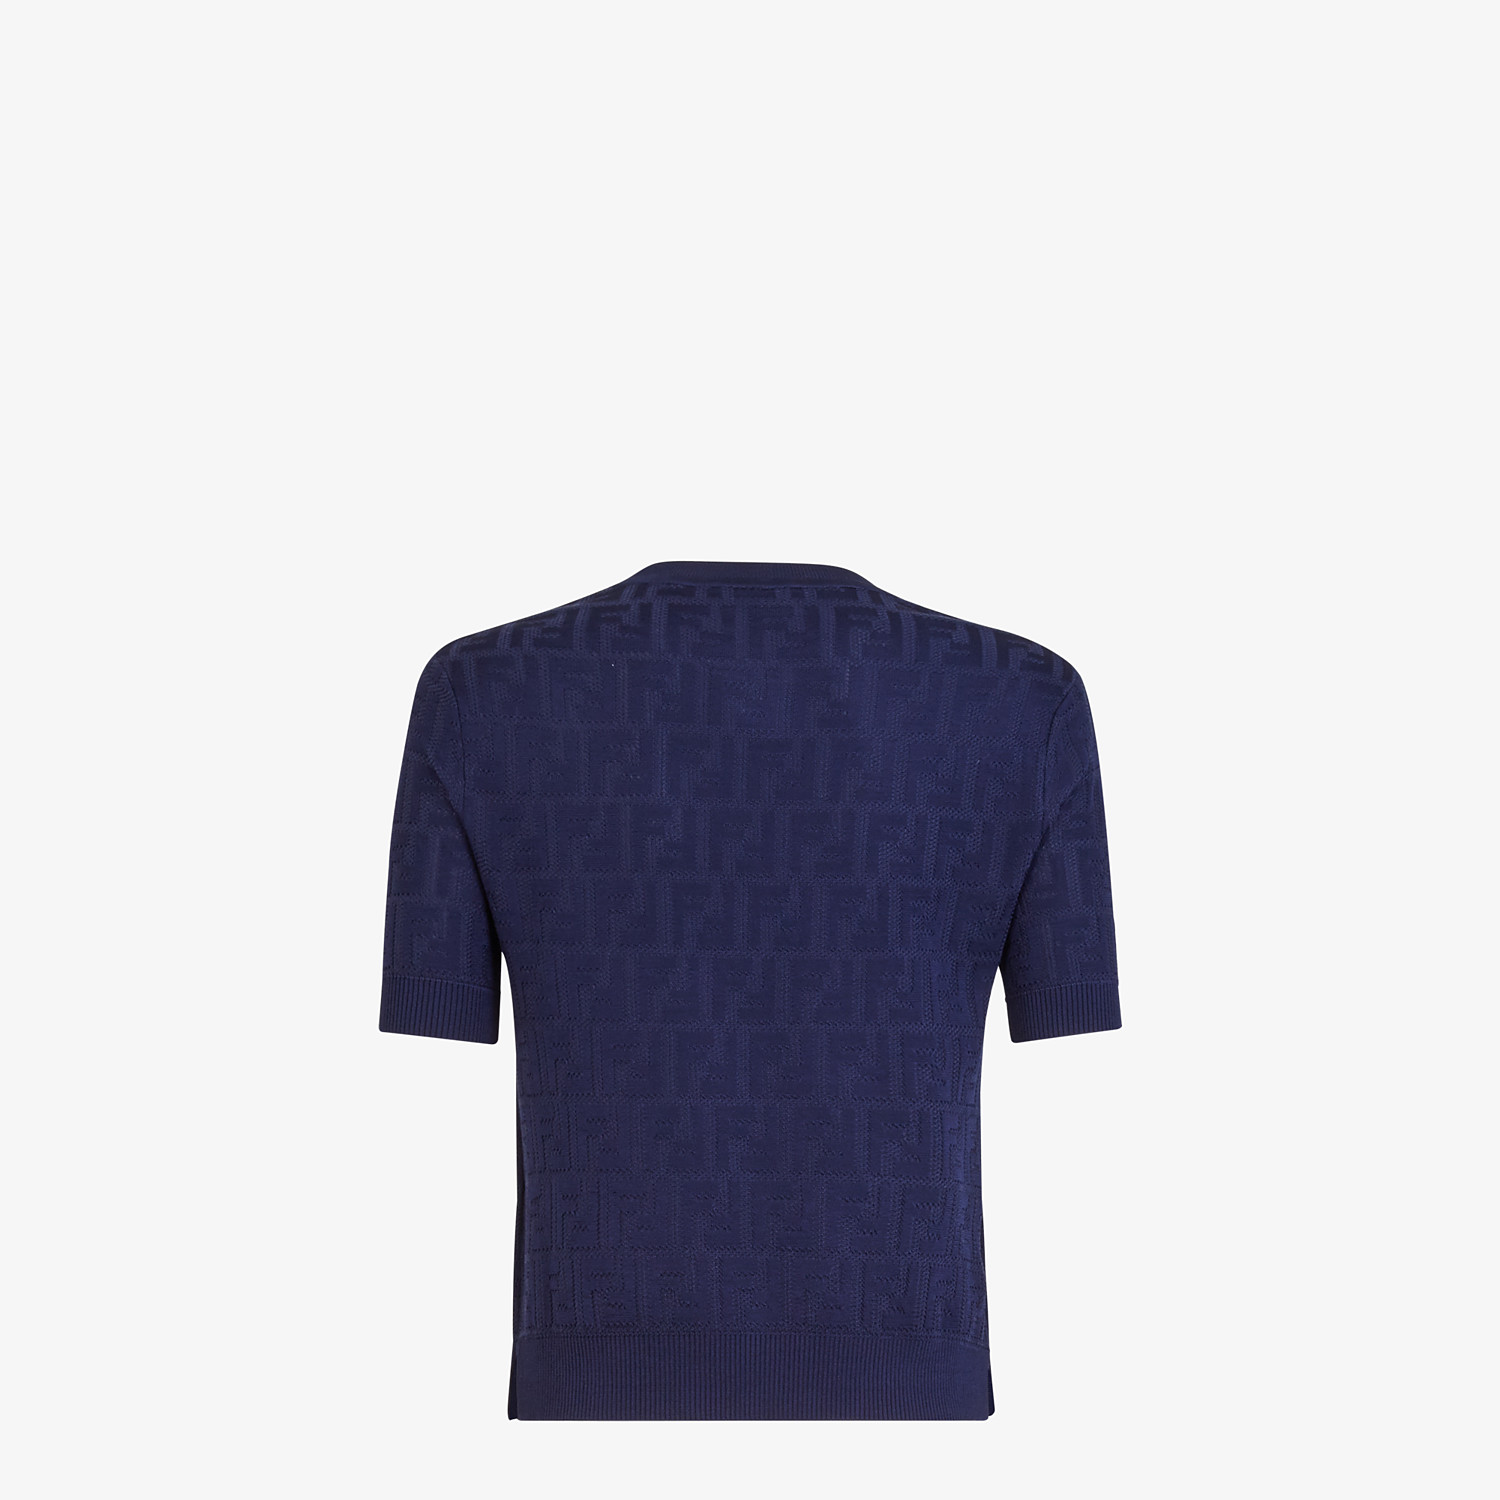 FENDI JUMPER - Blue cotton and viscose jumper - view 2 detail